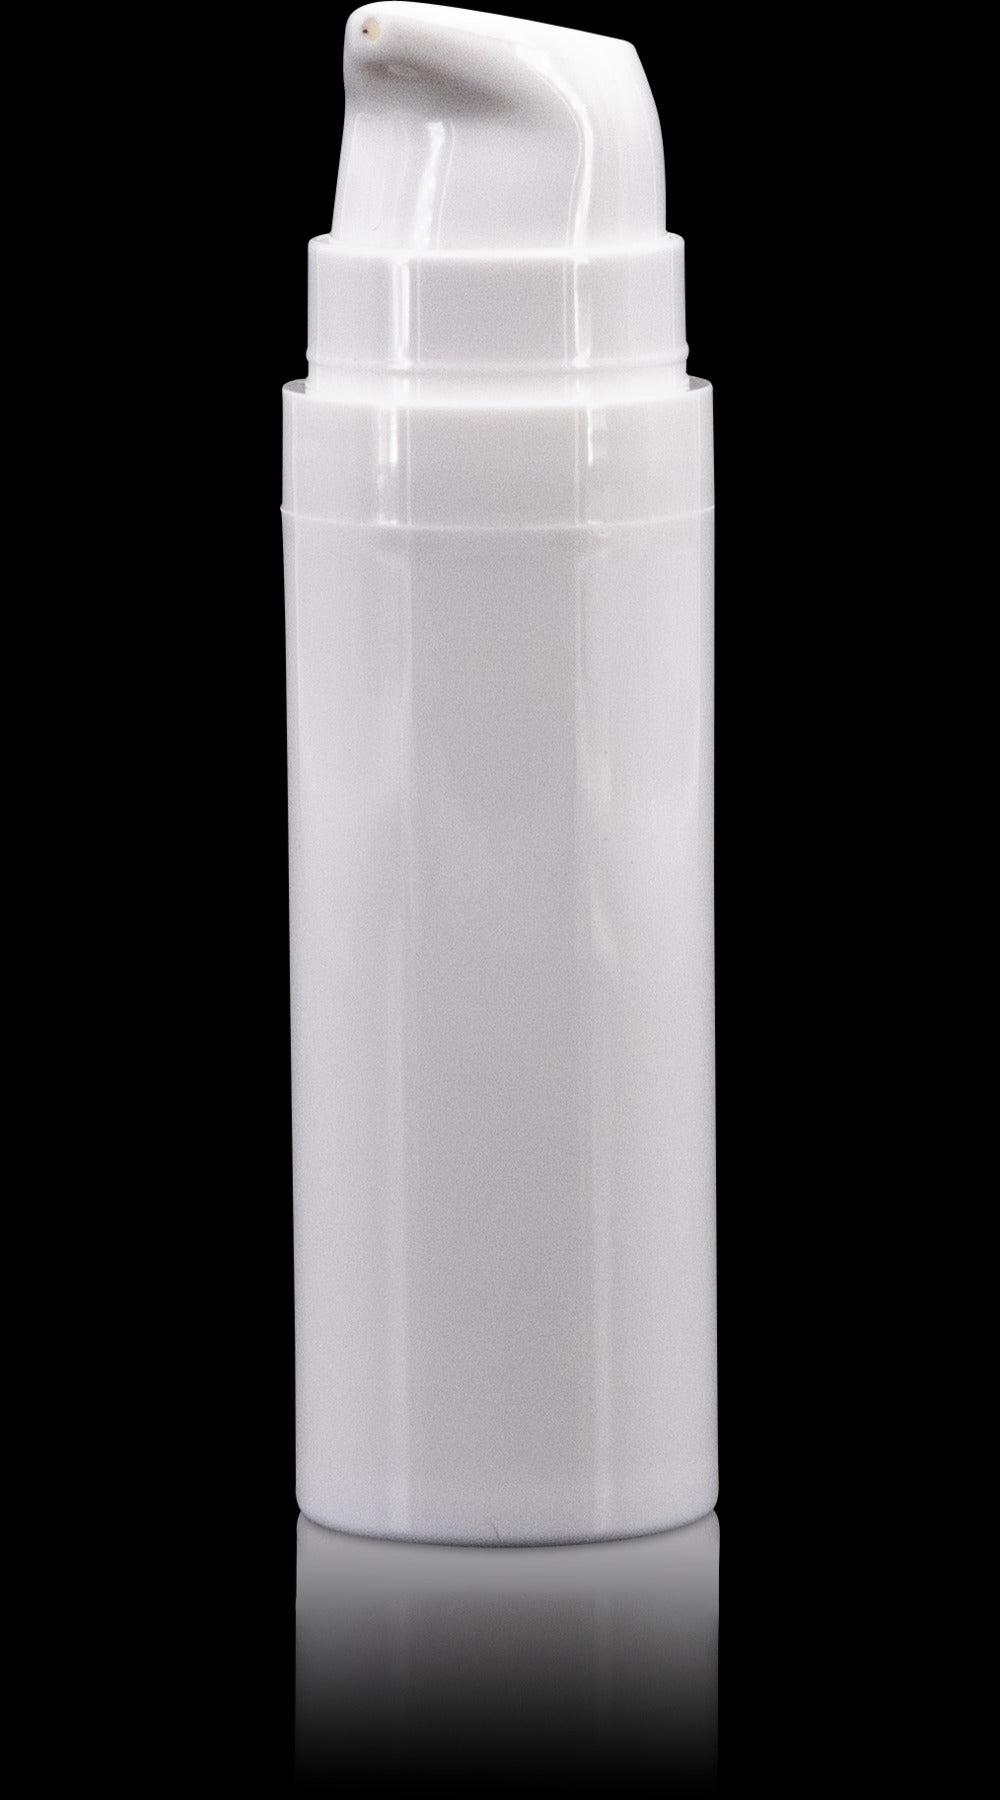 Pure 15 ML White PP Airless Bottle with Frosted Cap